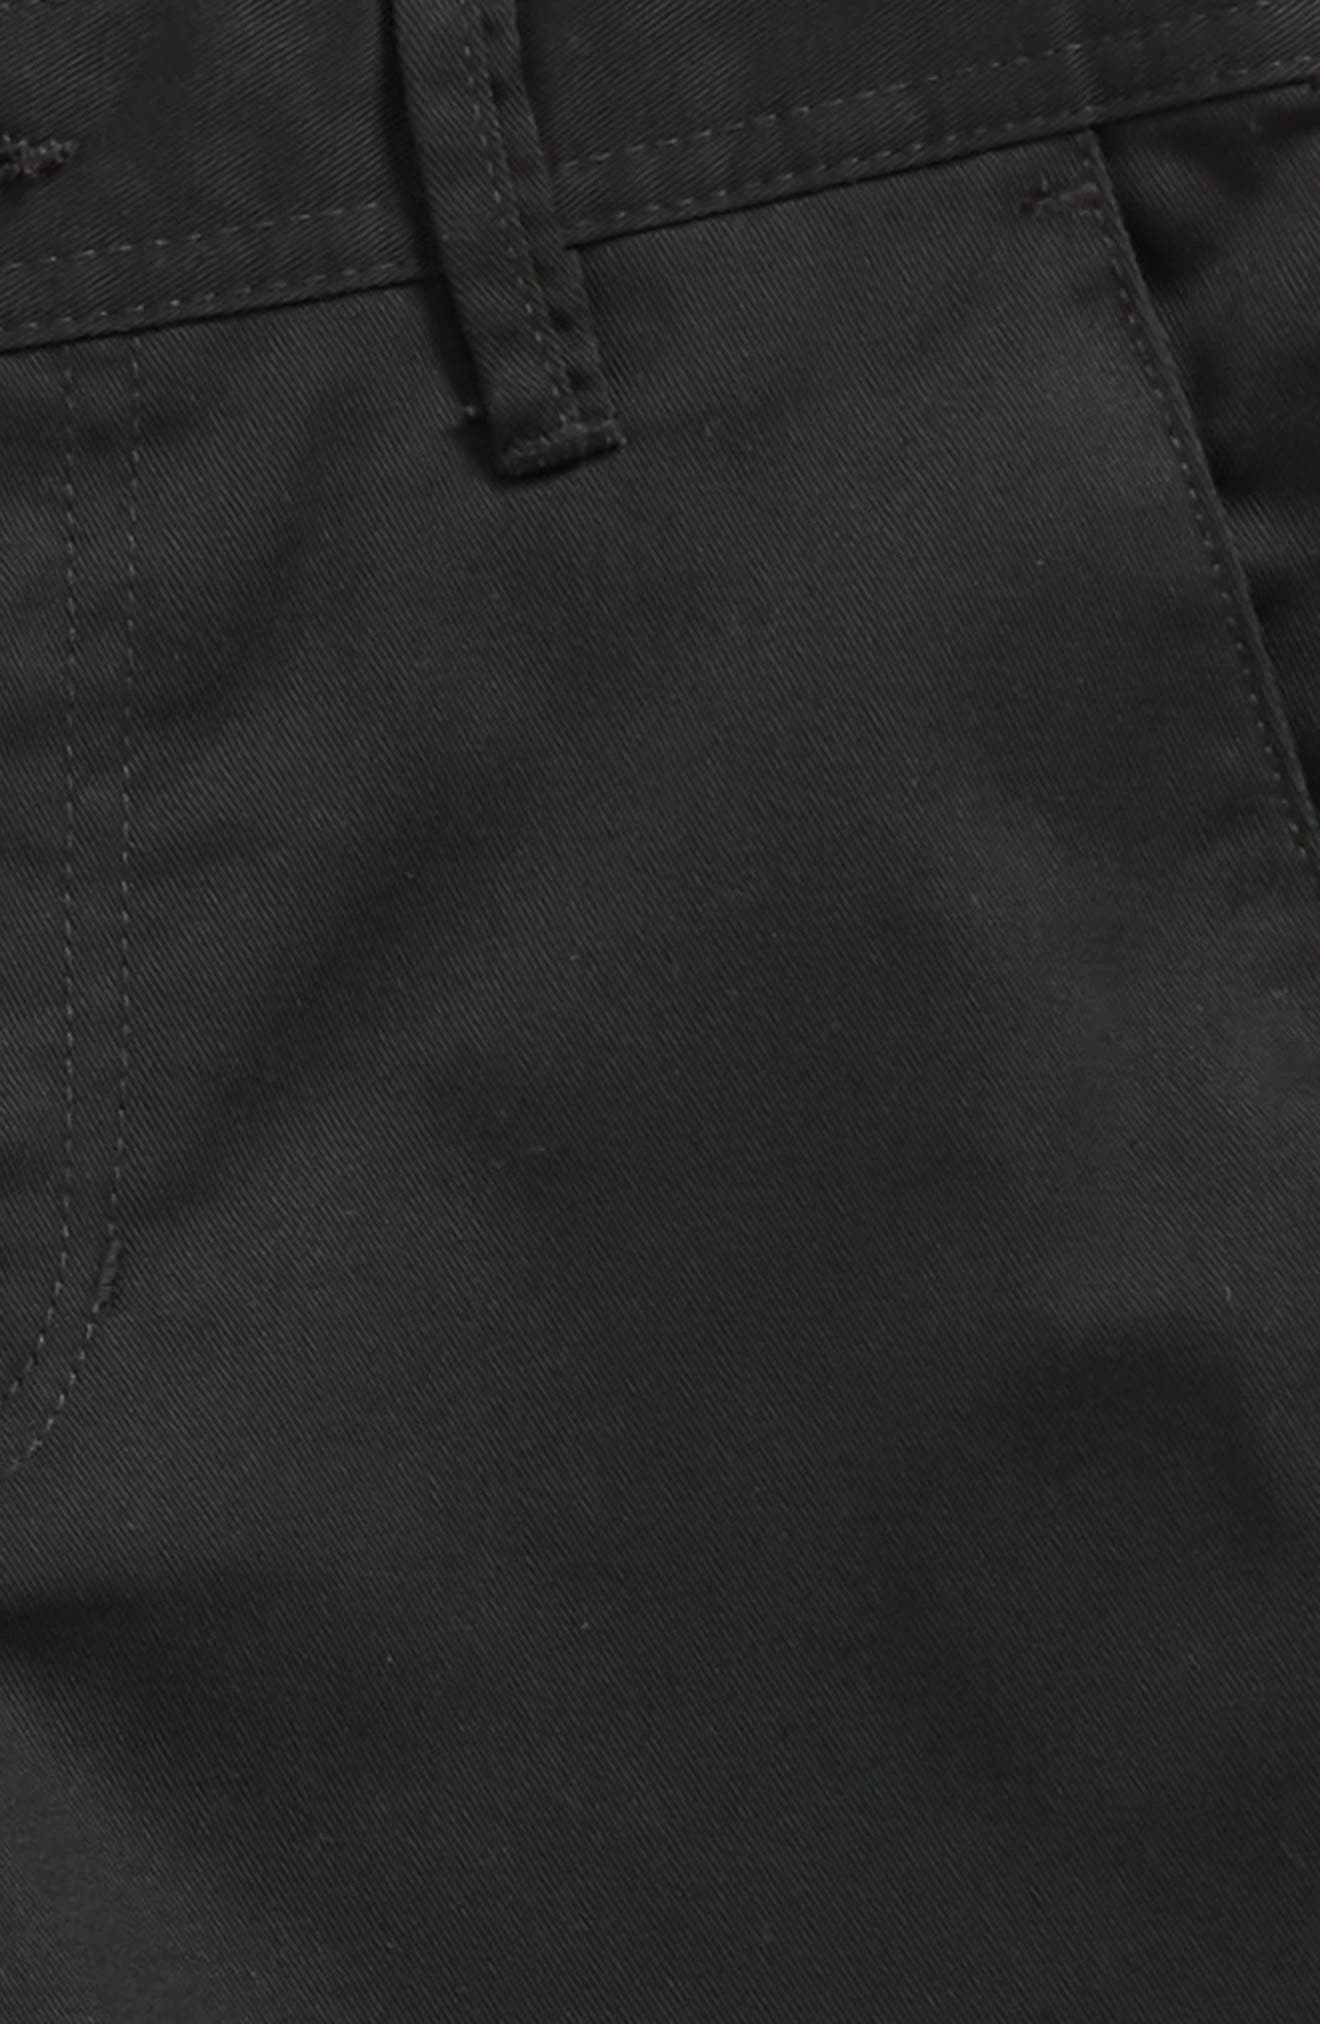 Chino Shorts,                             Alternate thumbnail 2, color,                             BLACK